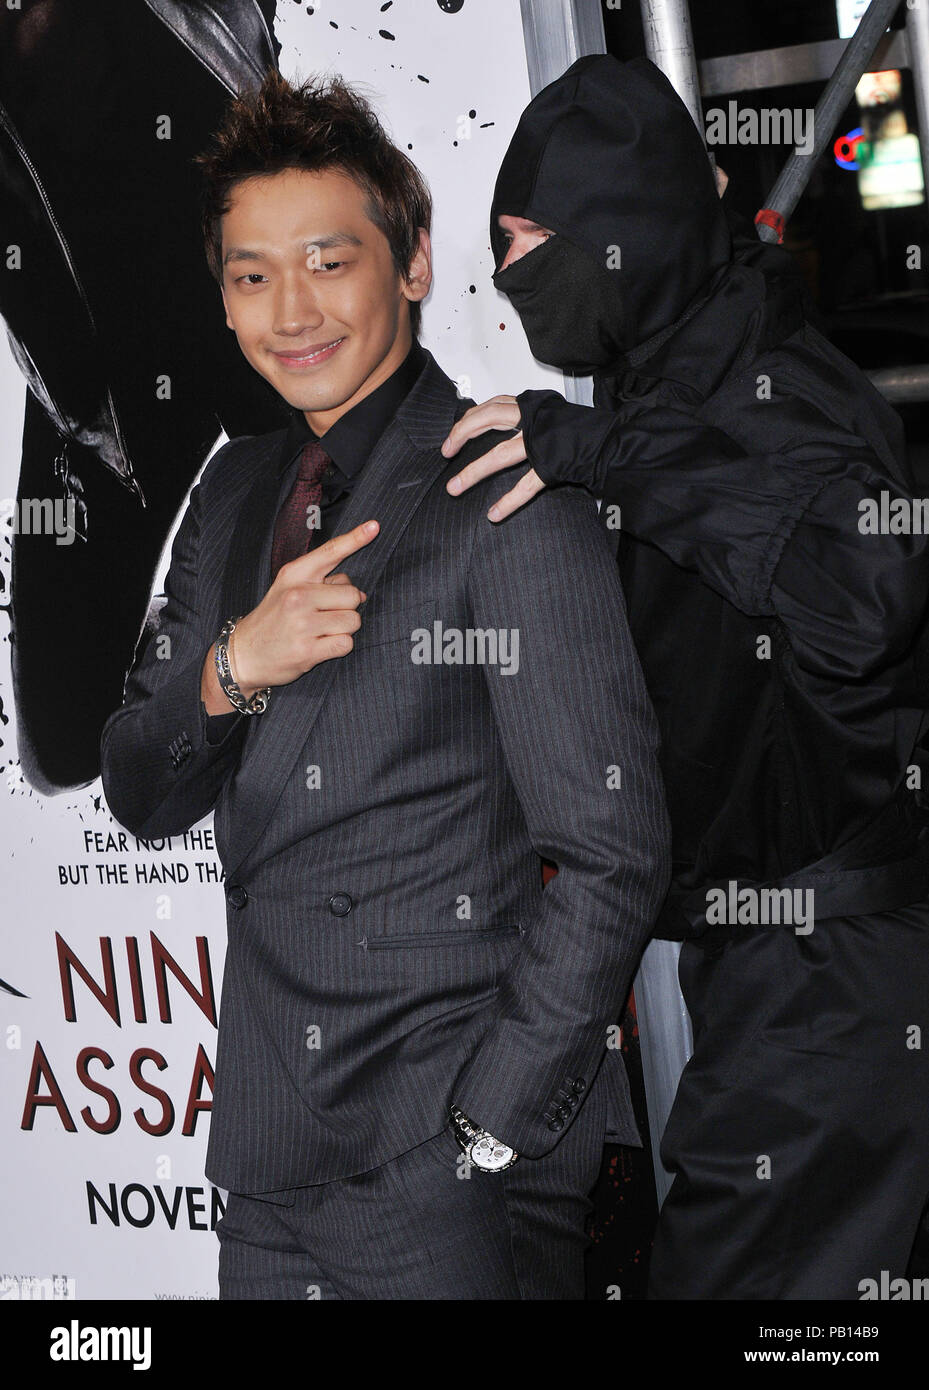 Rain Raizo   - NINJA ASSASSIN Premiere at GraumanÕs Chinese Theatre In Los Angeles.01_Rain Raizo_01 Red Carpet Event, Vertical, USA, Film Industry, Celebrities,  Photography, Bestof, Arts Culture and Entertainment, Topix Celebrities fashion /  Vertical, Best of, Event in Hollywood Life - California,  Red Carpet and backstage, USA, Film Industry, Celebrities,  movie celebrities, TV celebrities, Music celebrities, Photography, Bestof, Arts Culture and Entertainment,  Topix, vertical, one person,, from the years , 2006 to 2009, inquiry tsuni@Gamma-USA.com - Three Quarters - Stock Image